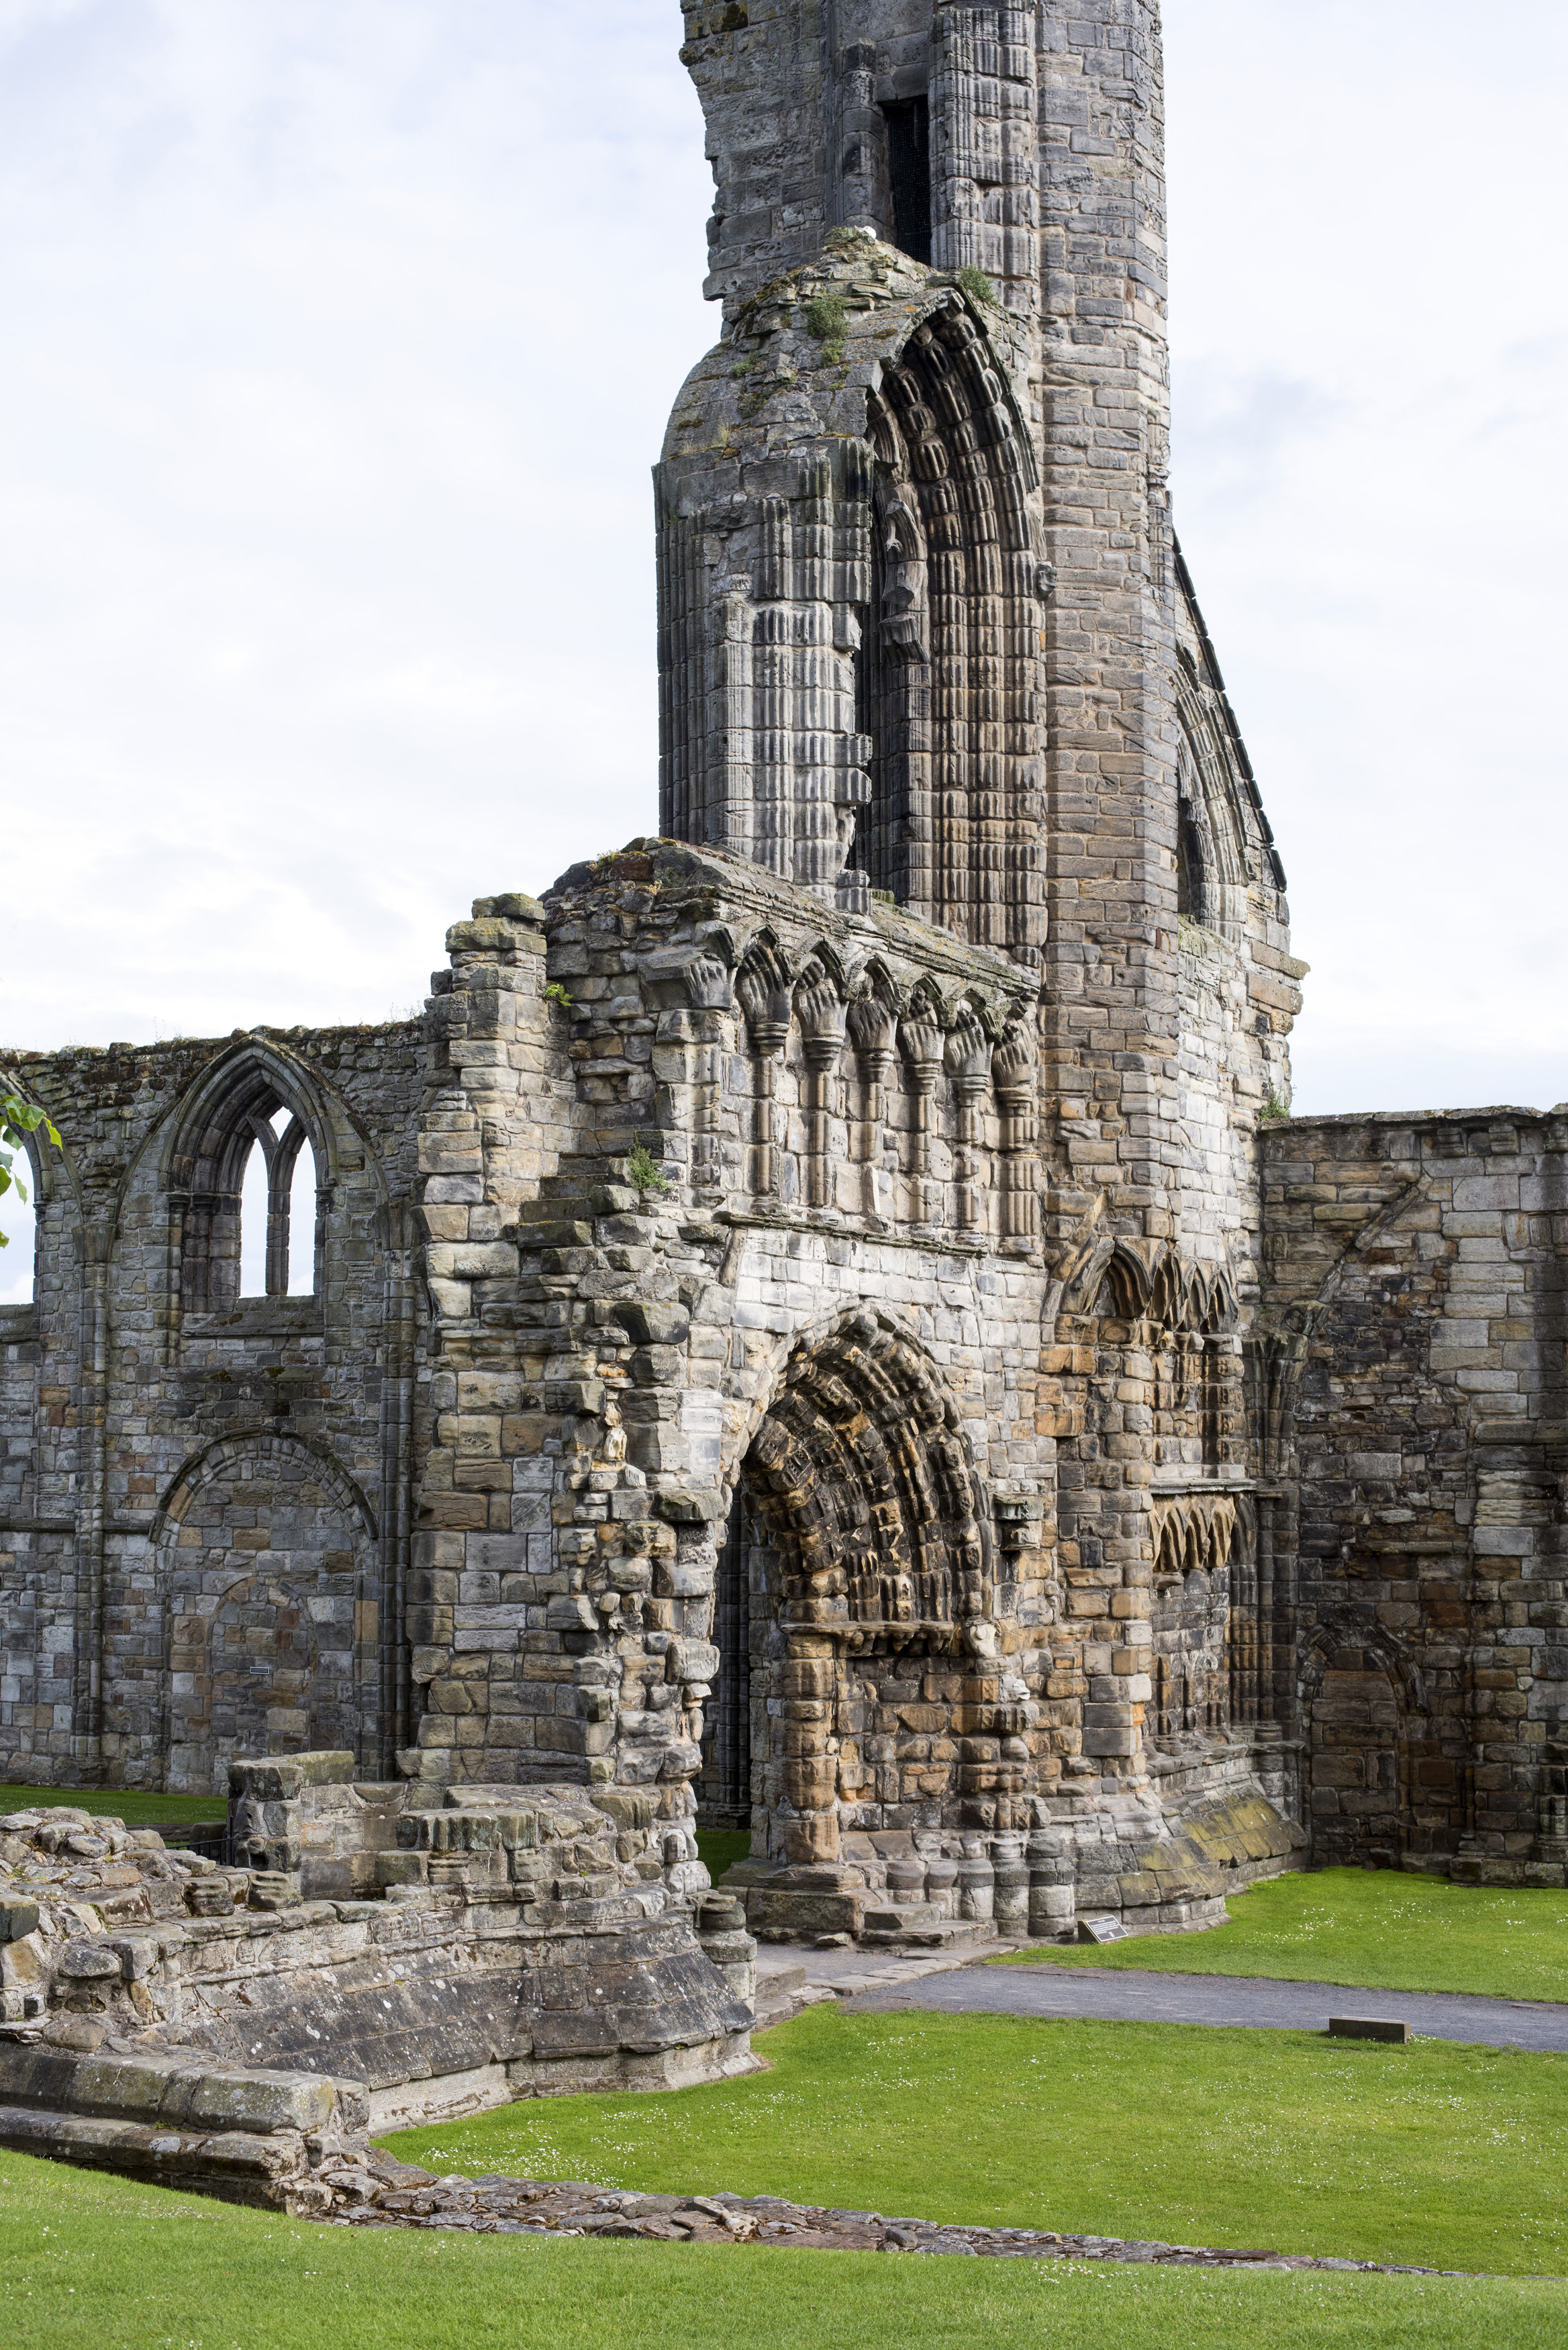 Graceful Gothic stone arches and remnants of wall in St Andrews Cathedral ruins, Scotland against a grey sky with copy space